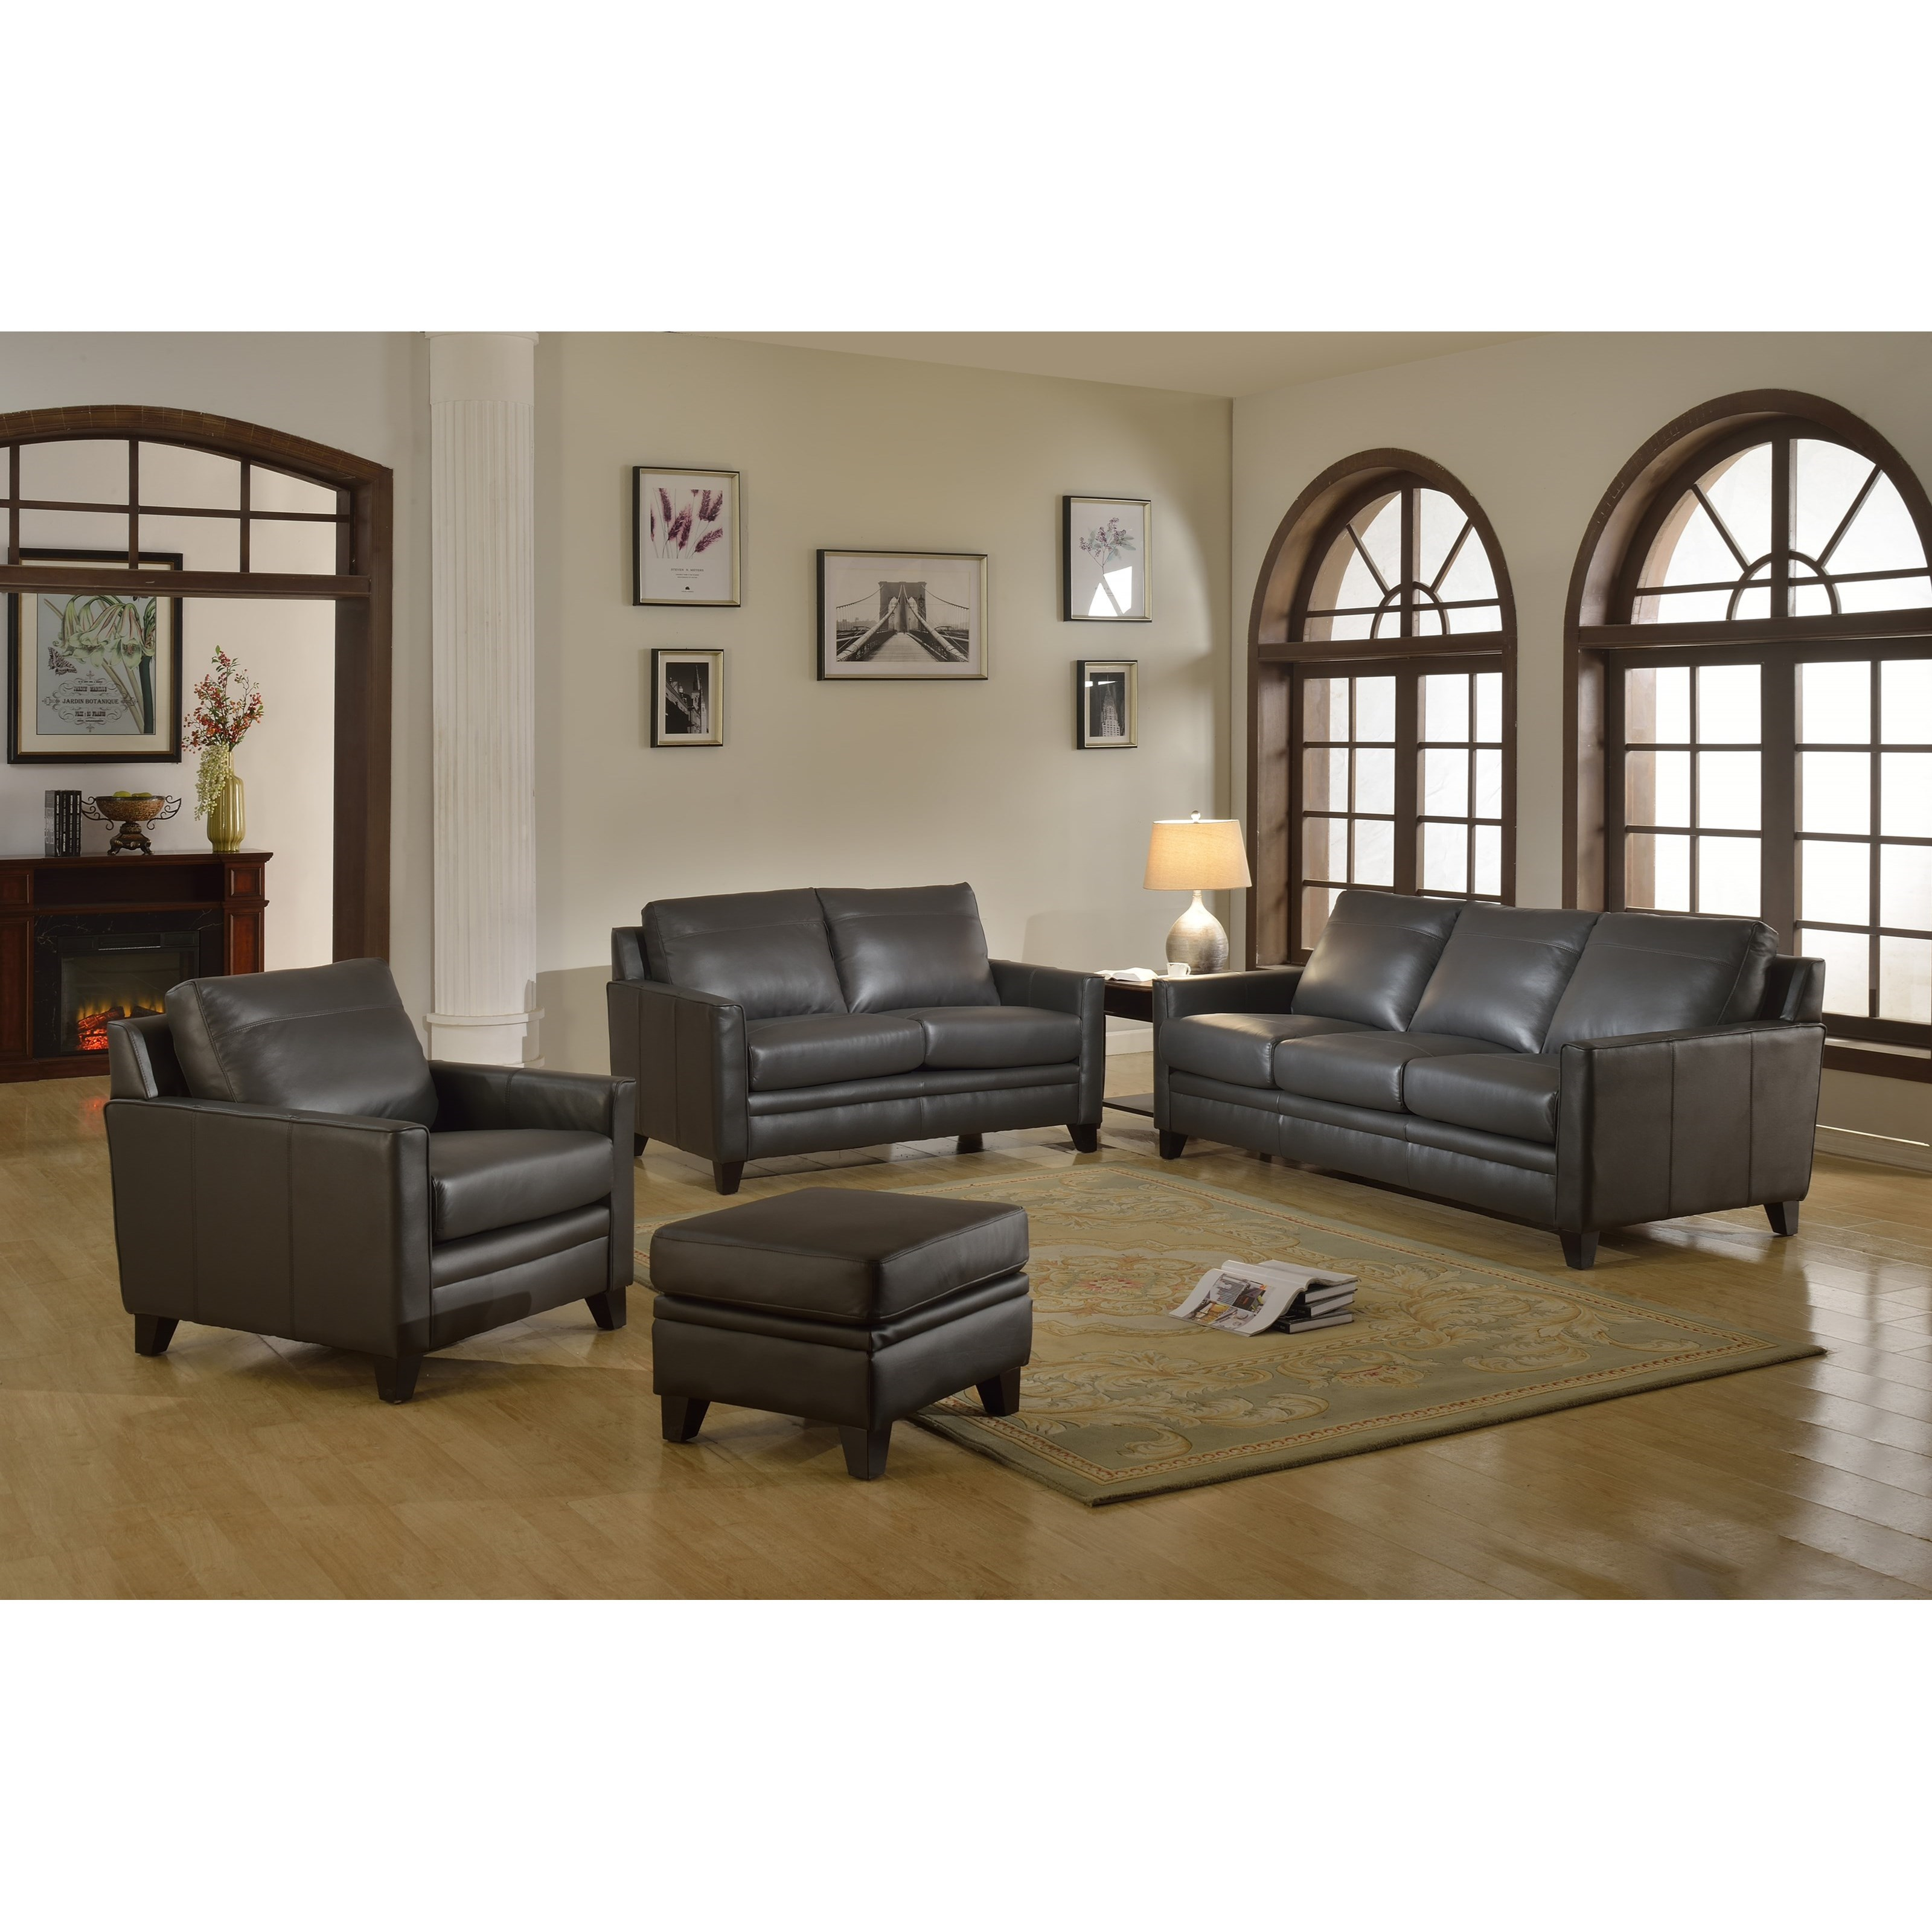 Fletcher Leather Living Room Group by Leather Italia USA at Lindy's Furniture Company